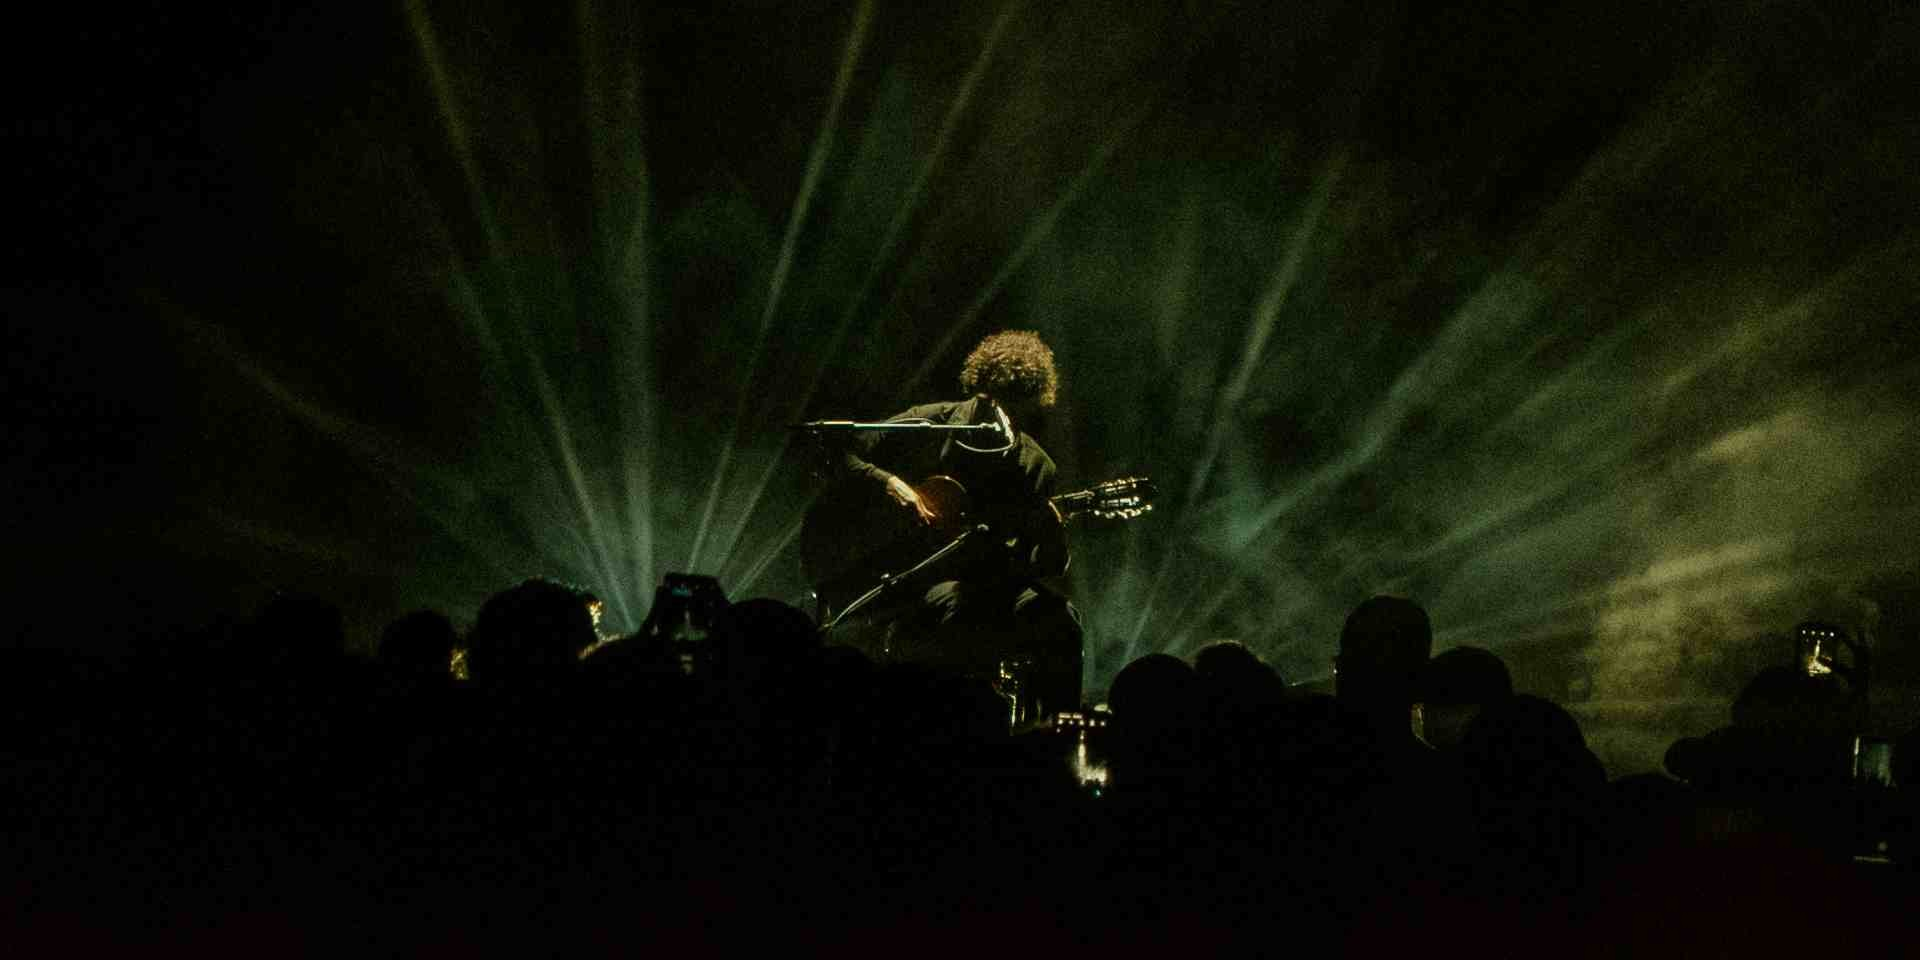 José González delivers a mesmerising, stripped-down performance at Singapore show – gig report